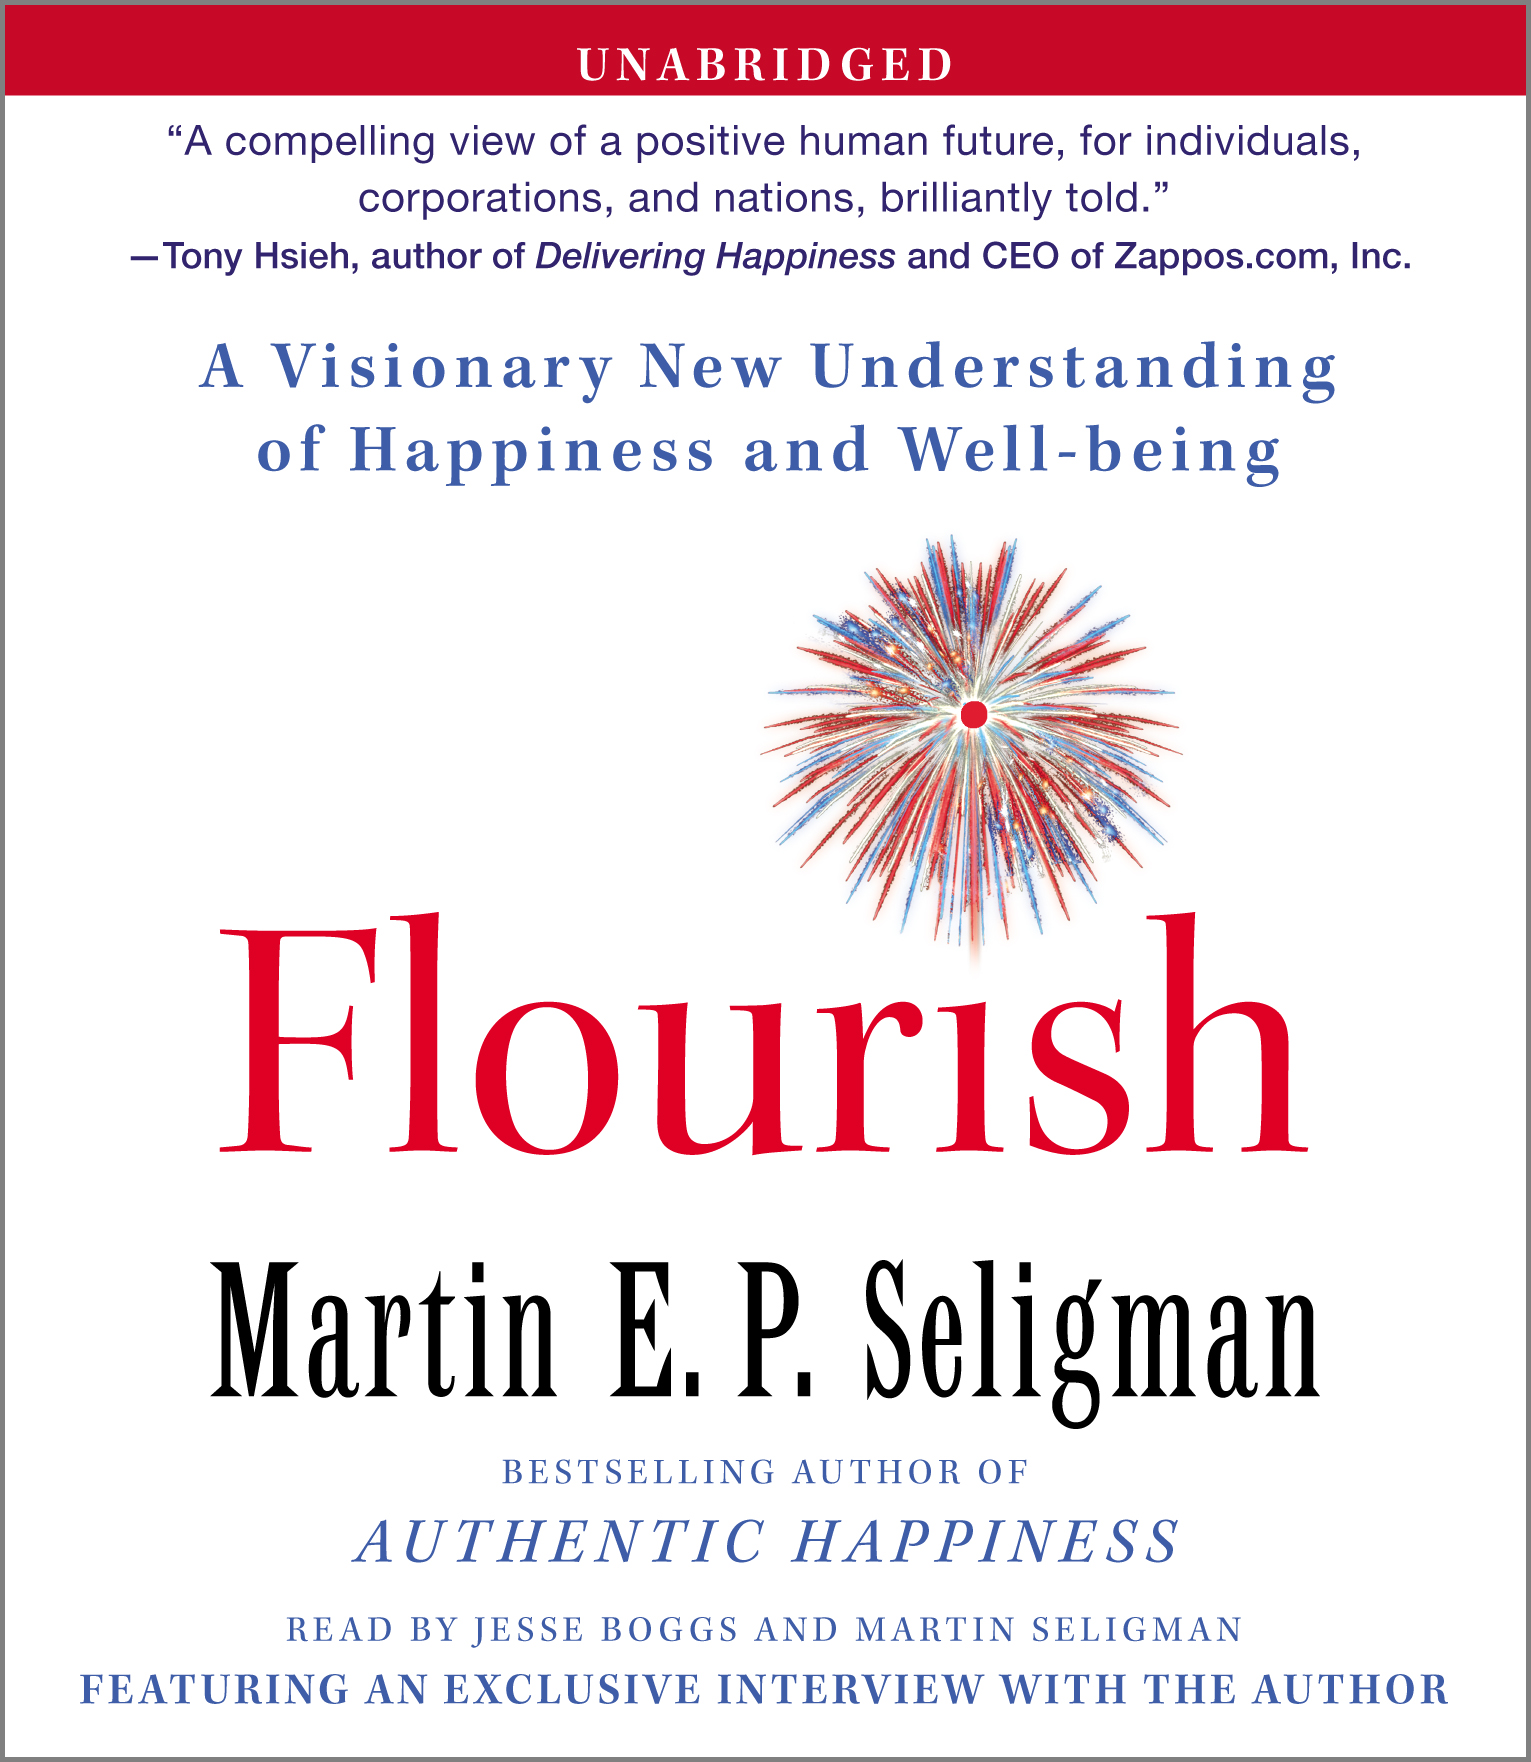 A Visionary New Understanding of Happiness and Well-being - Martin Seligman